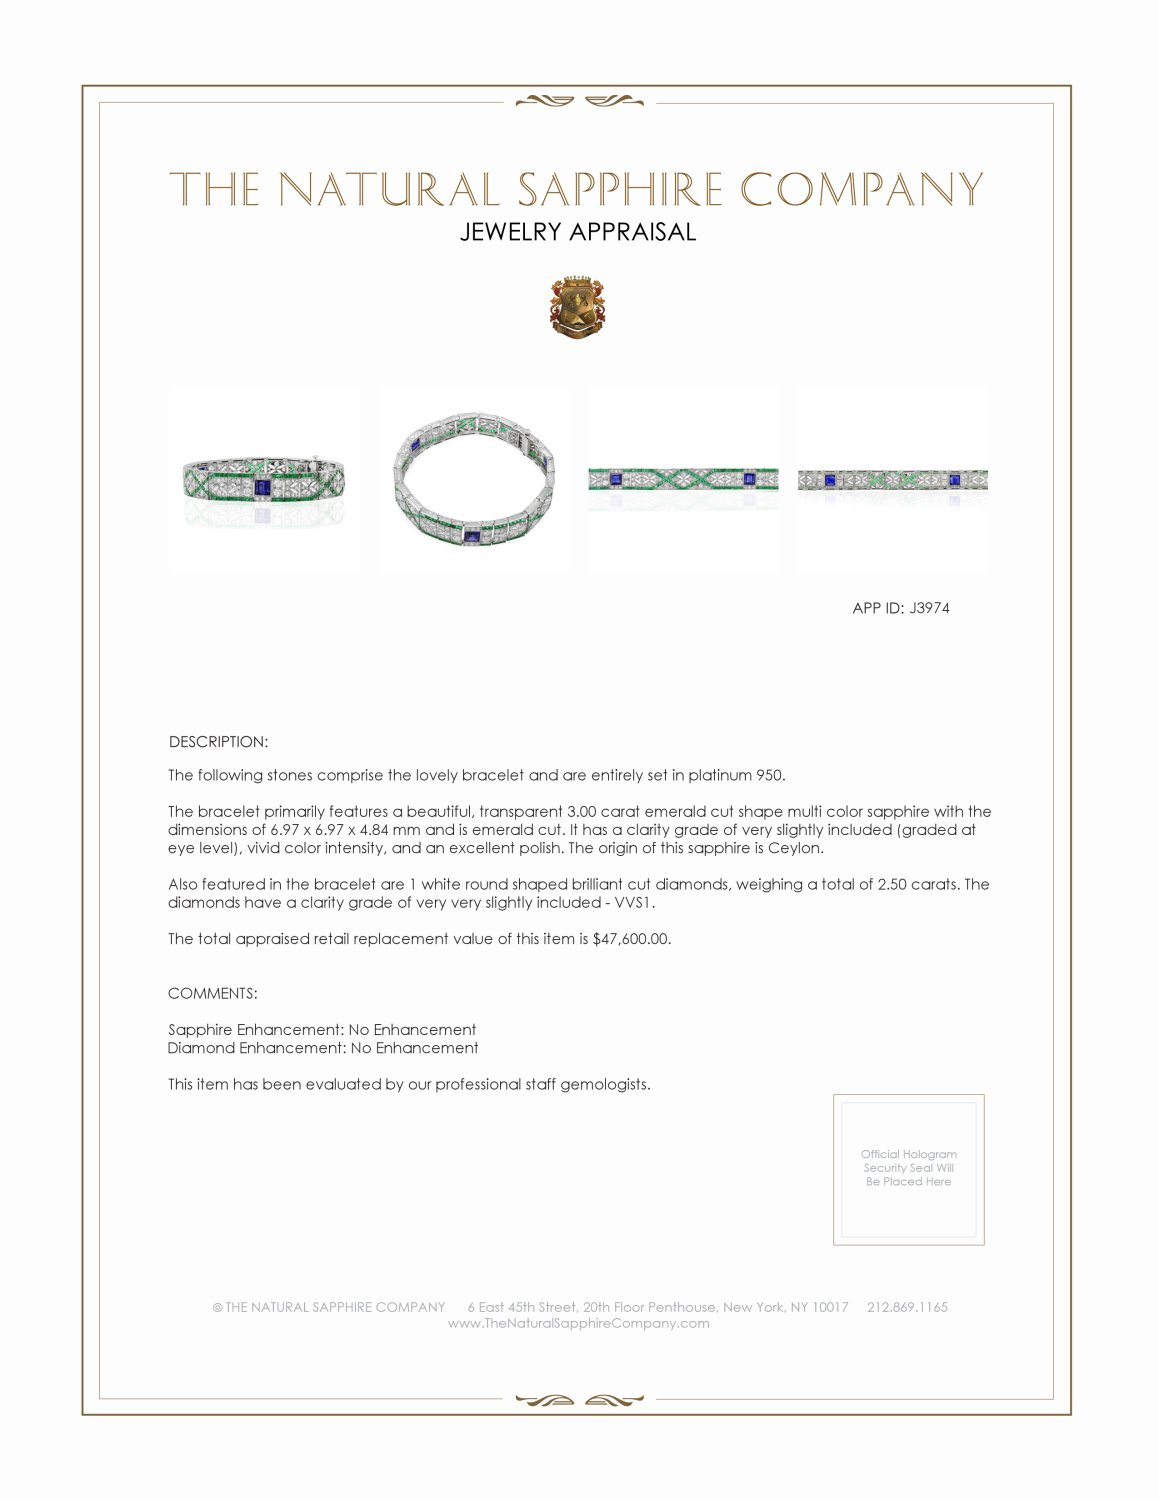 3.00ct Multi Color Sapphire Bracelet Certification